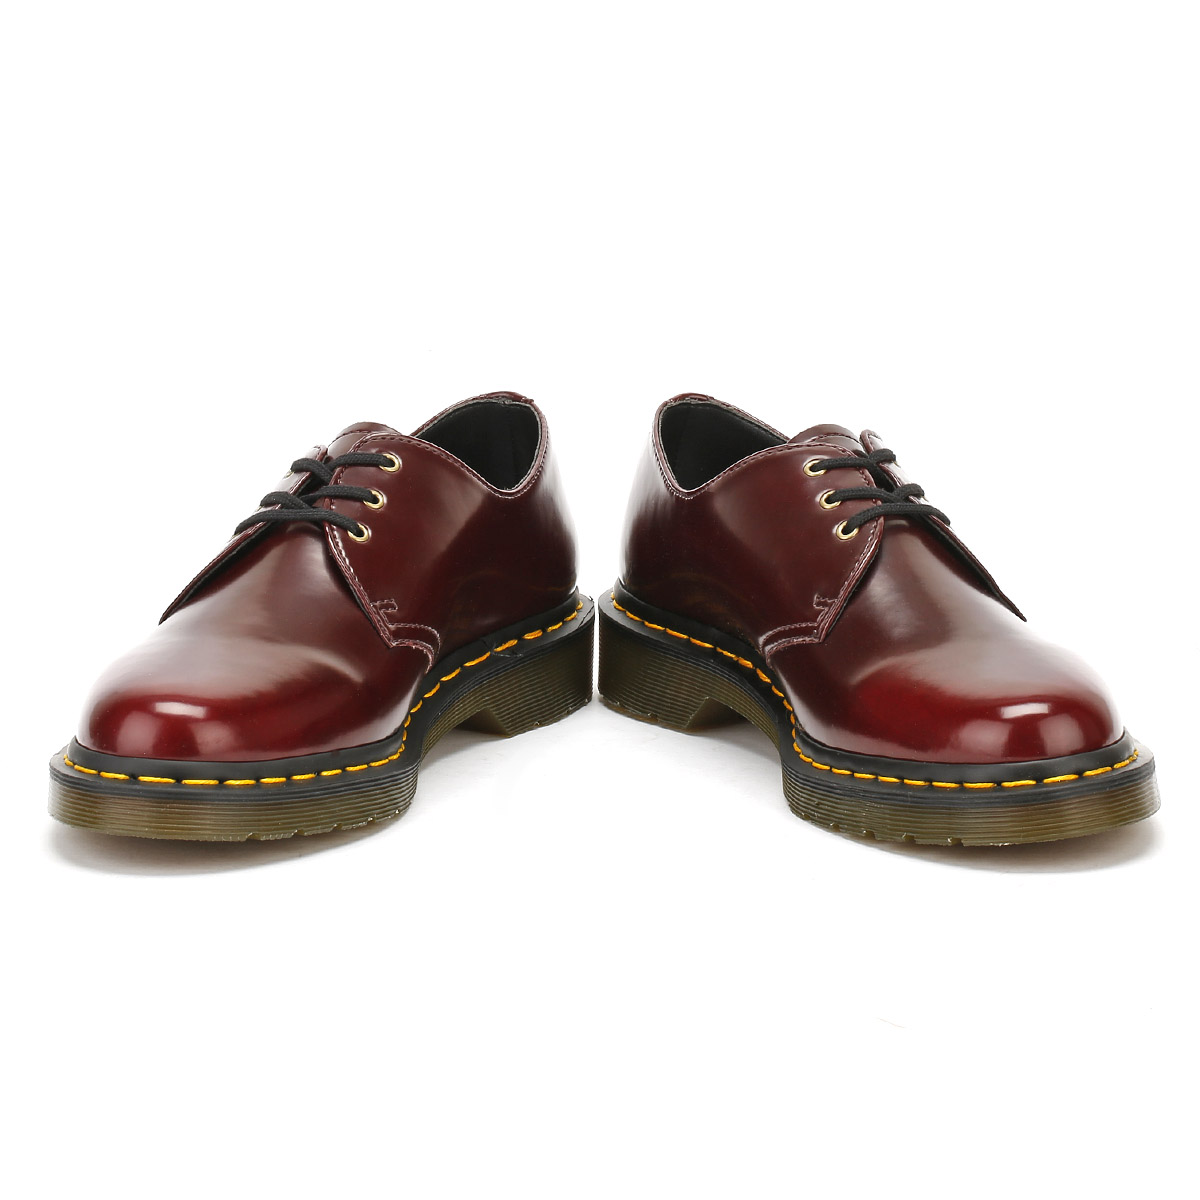 dr martens womens casual 1461 derby shoes silver or